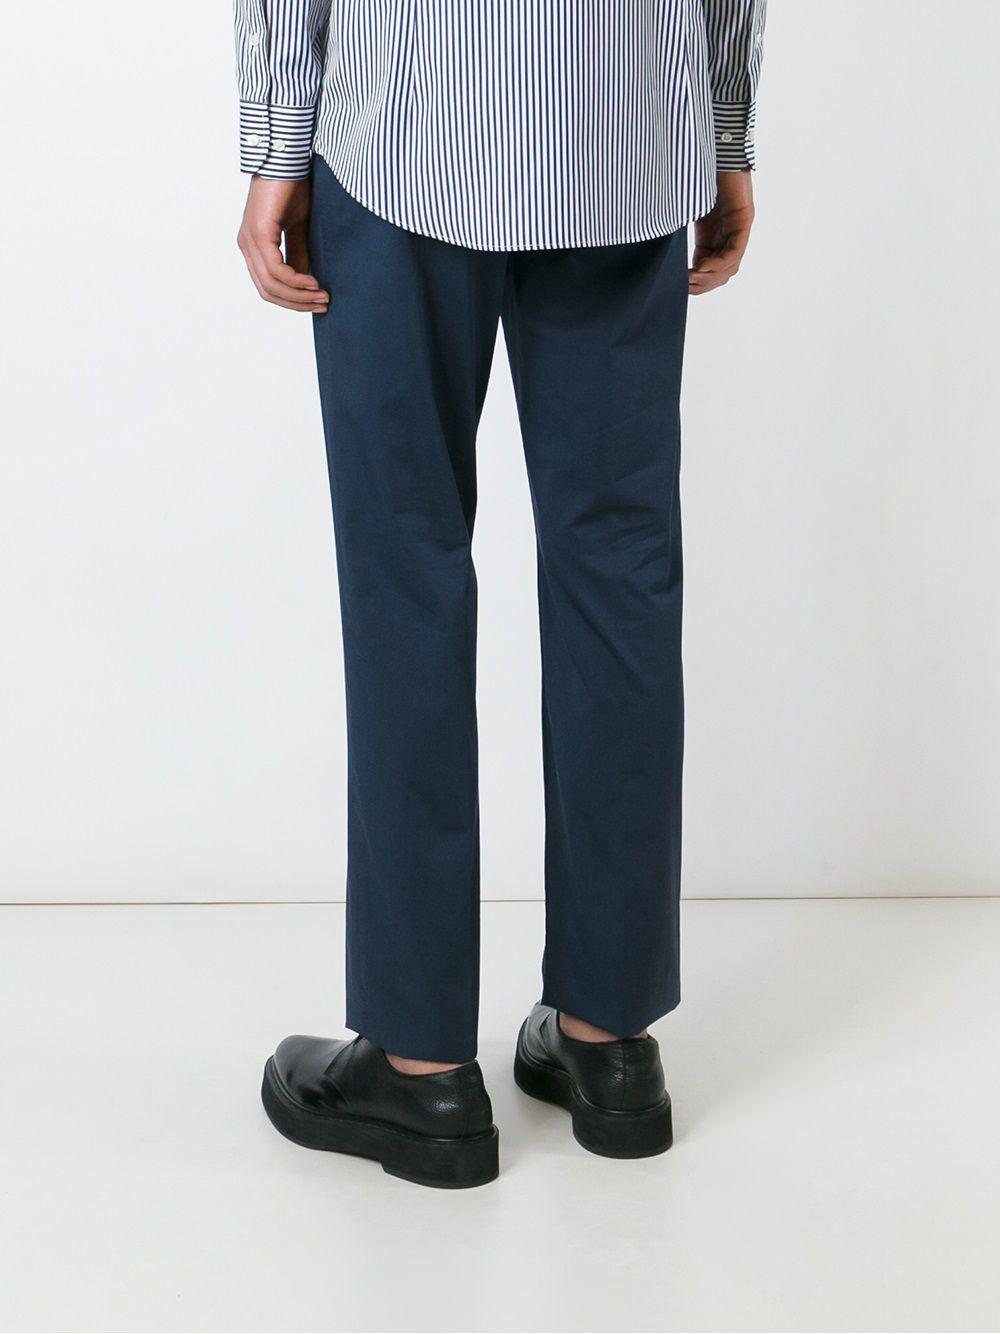 Etro Cotton Chino Trousers in Blue for Men